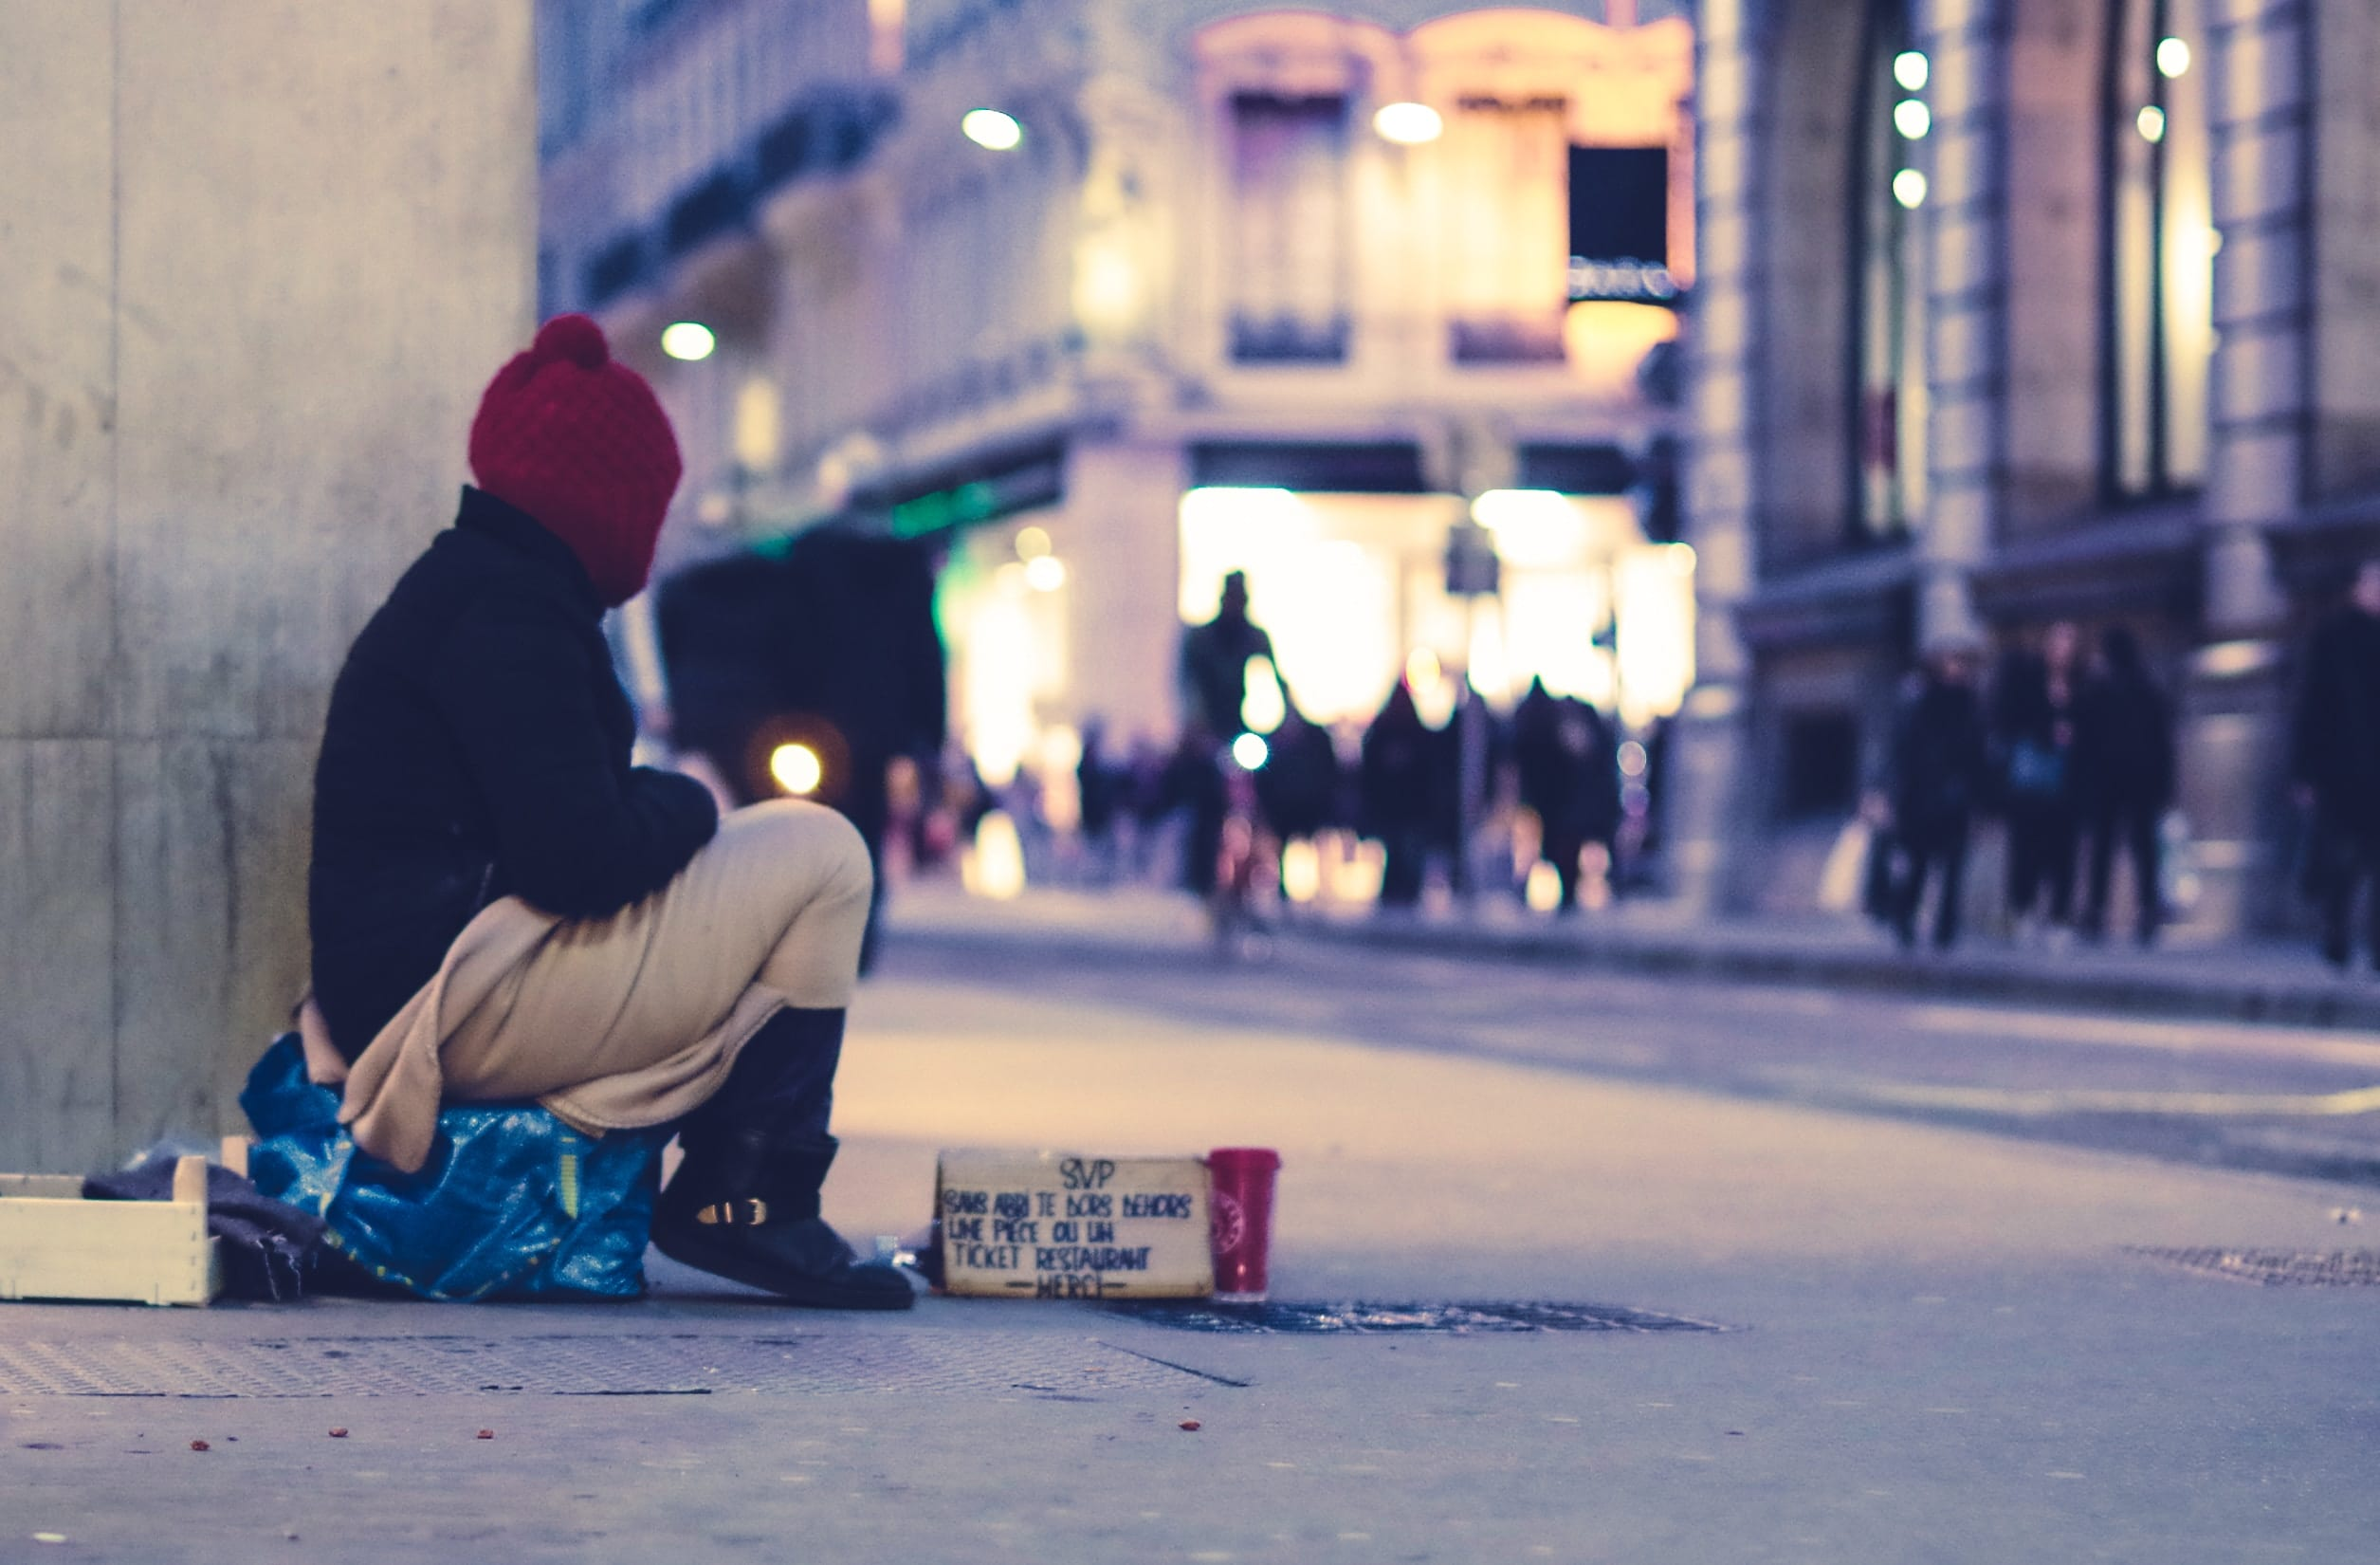 Researchers Note Expanded Treatment Options for Homeless Patients